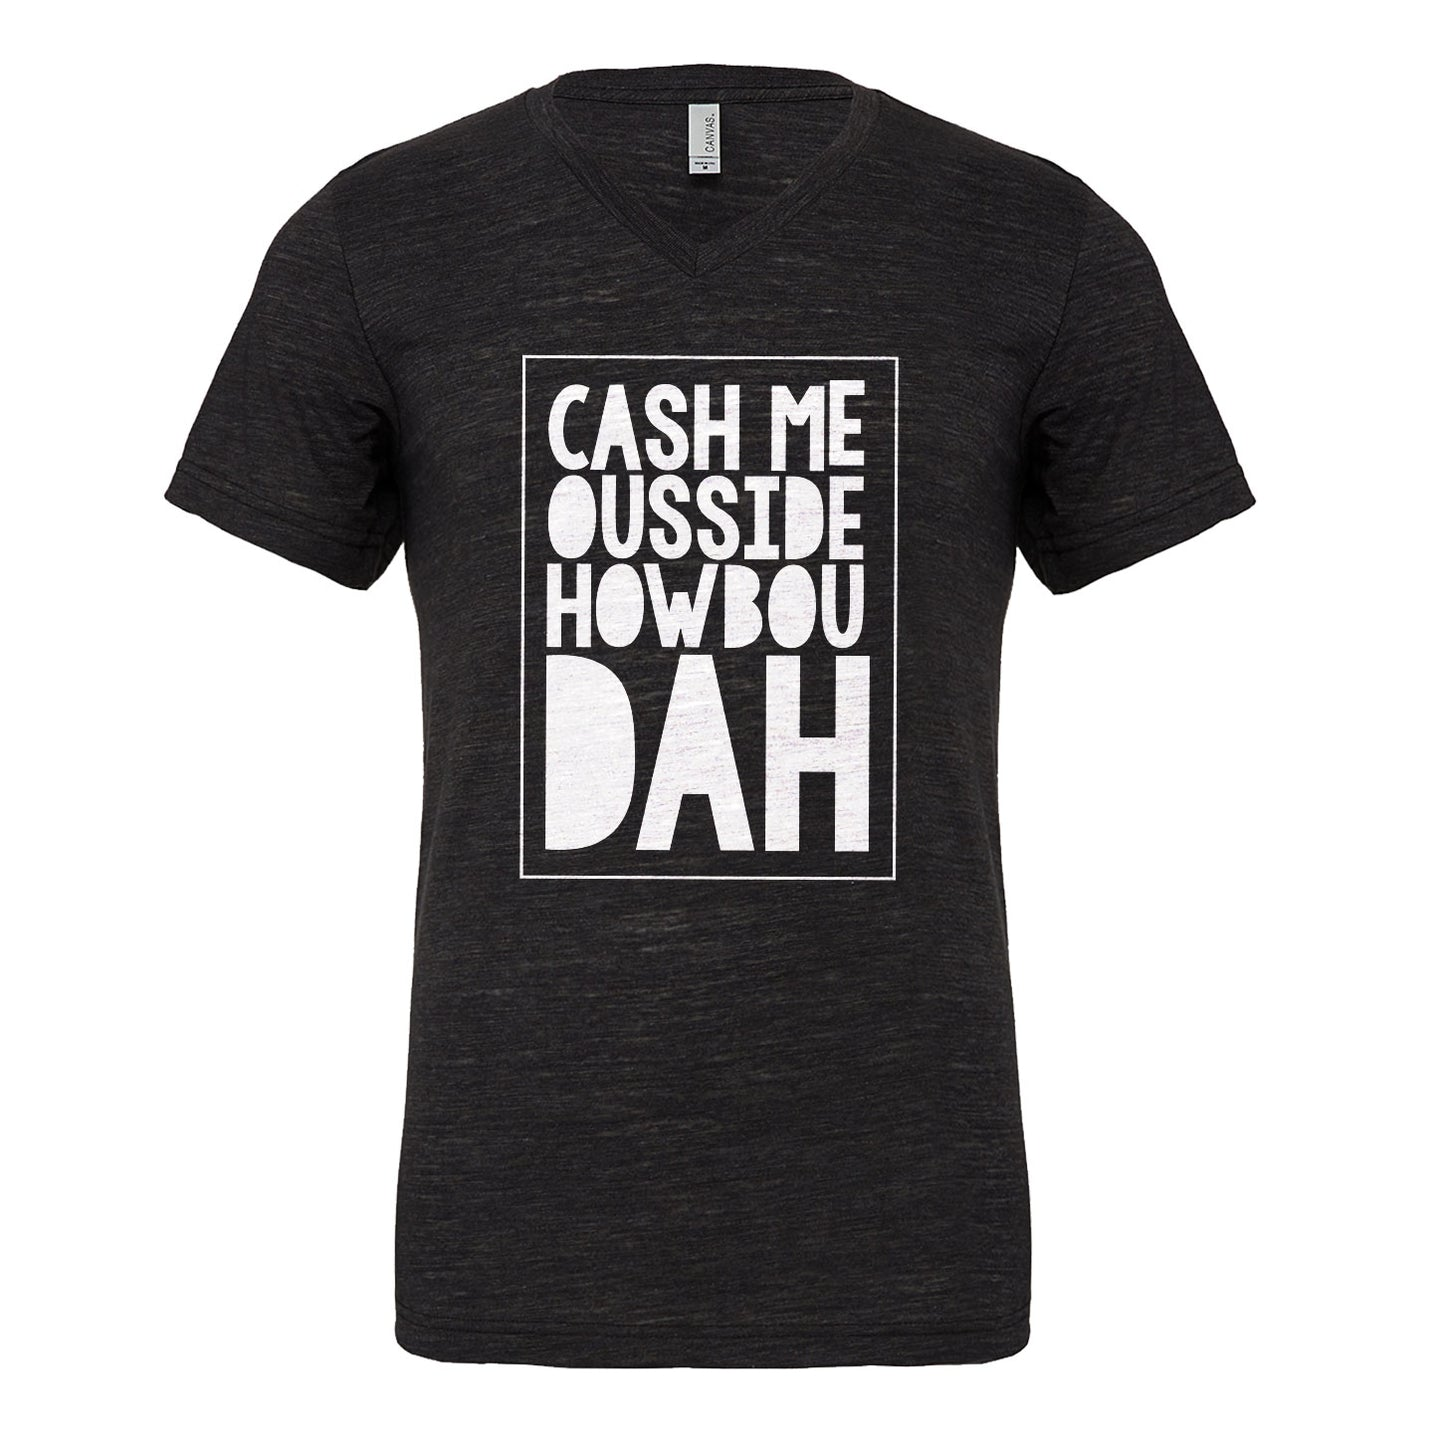 Mens Cash Me Ousside How Bow Dah Vneck T-shirt